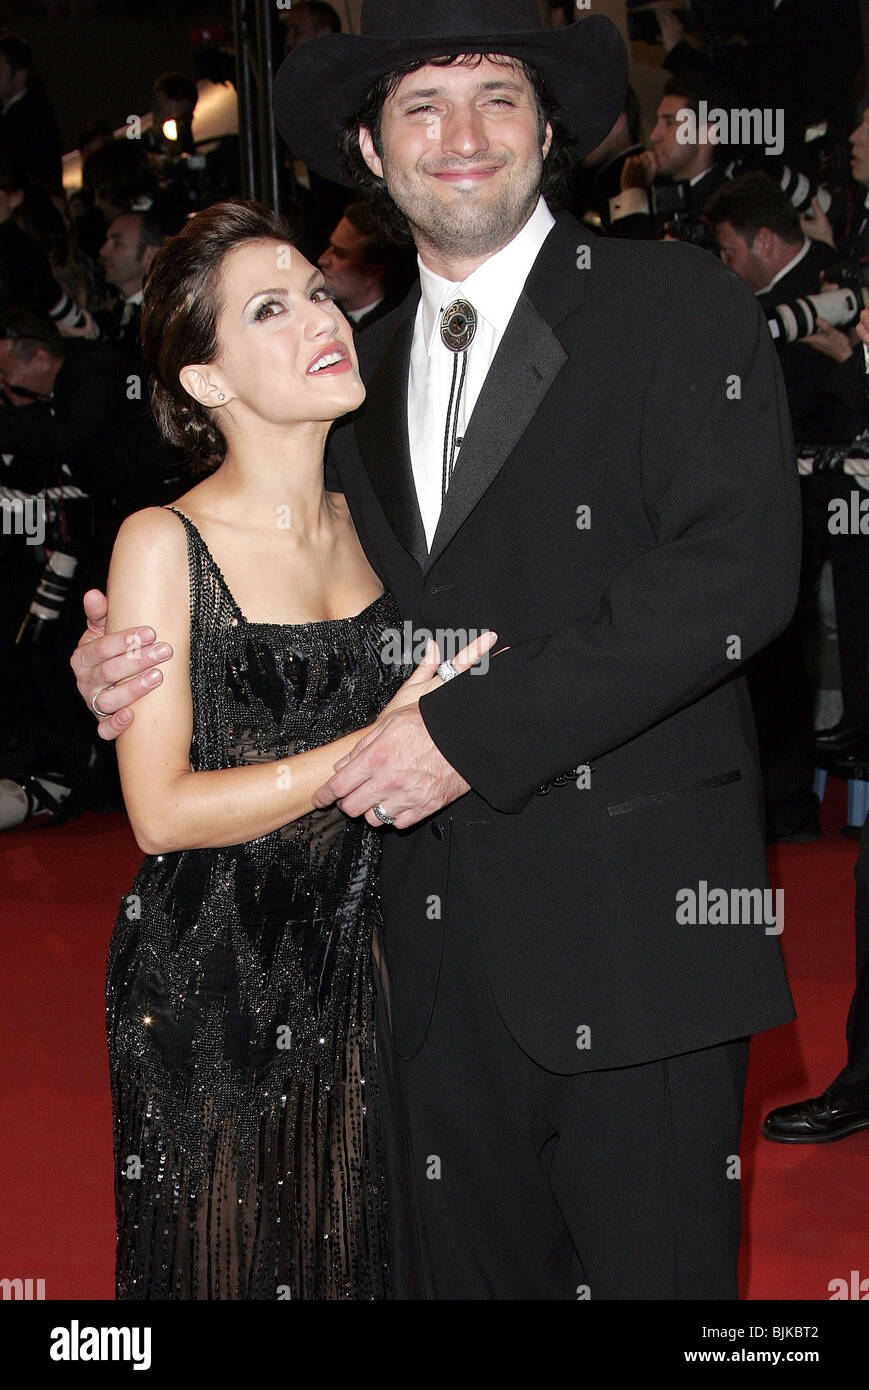 BRITTANY MURPHY & ROBERT RODRIGUEZ CANNES FILM FESTIVAL 2005 CANNES FRANCE 18 May 2005 - Stock Image